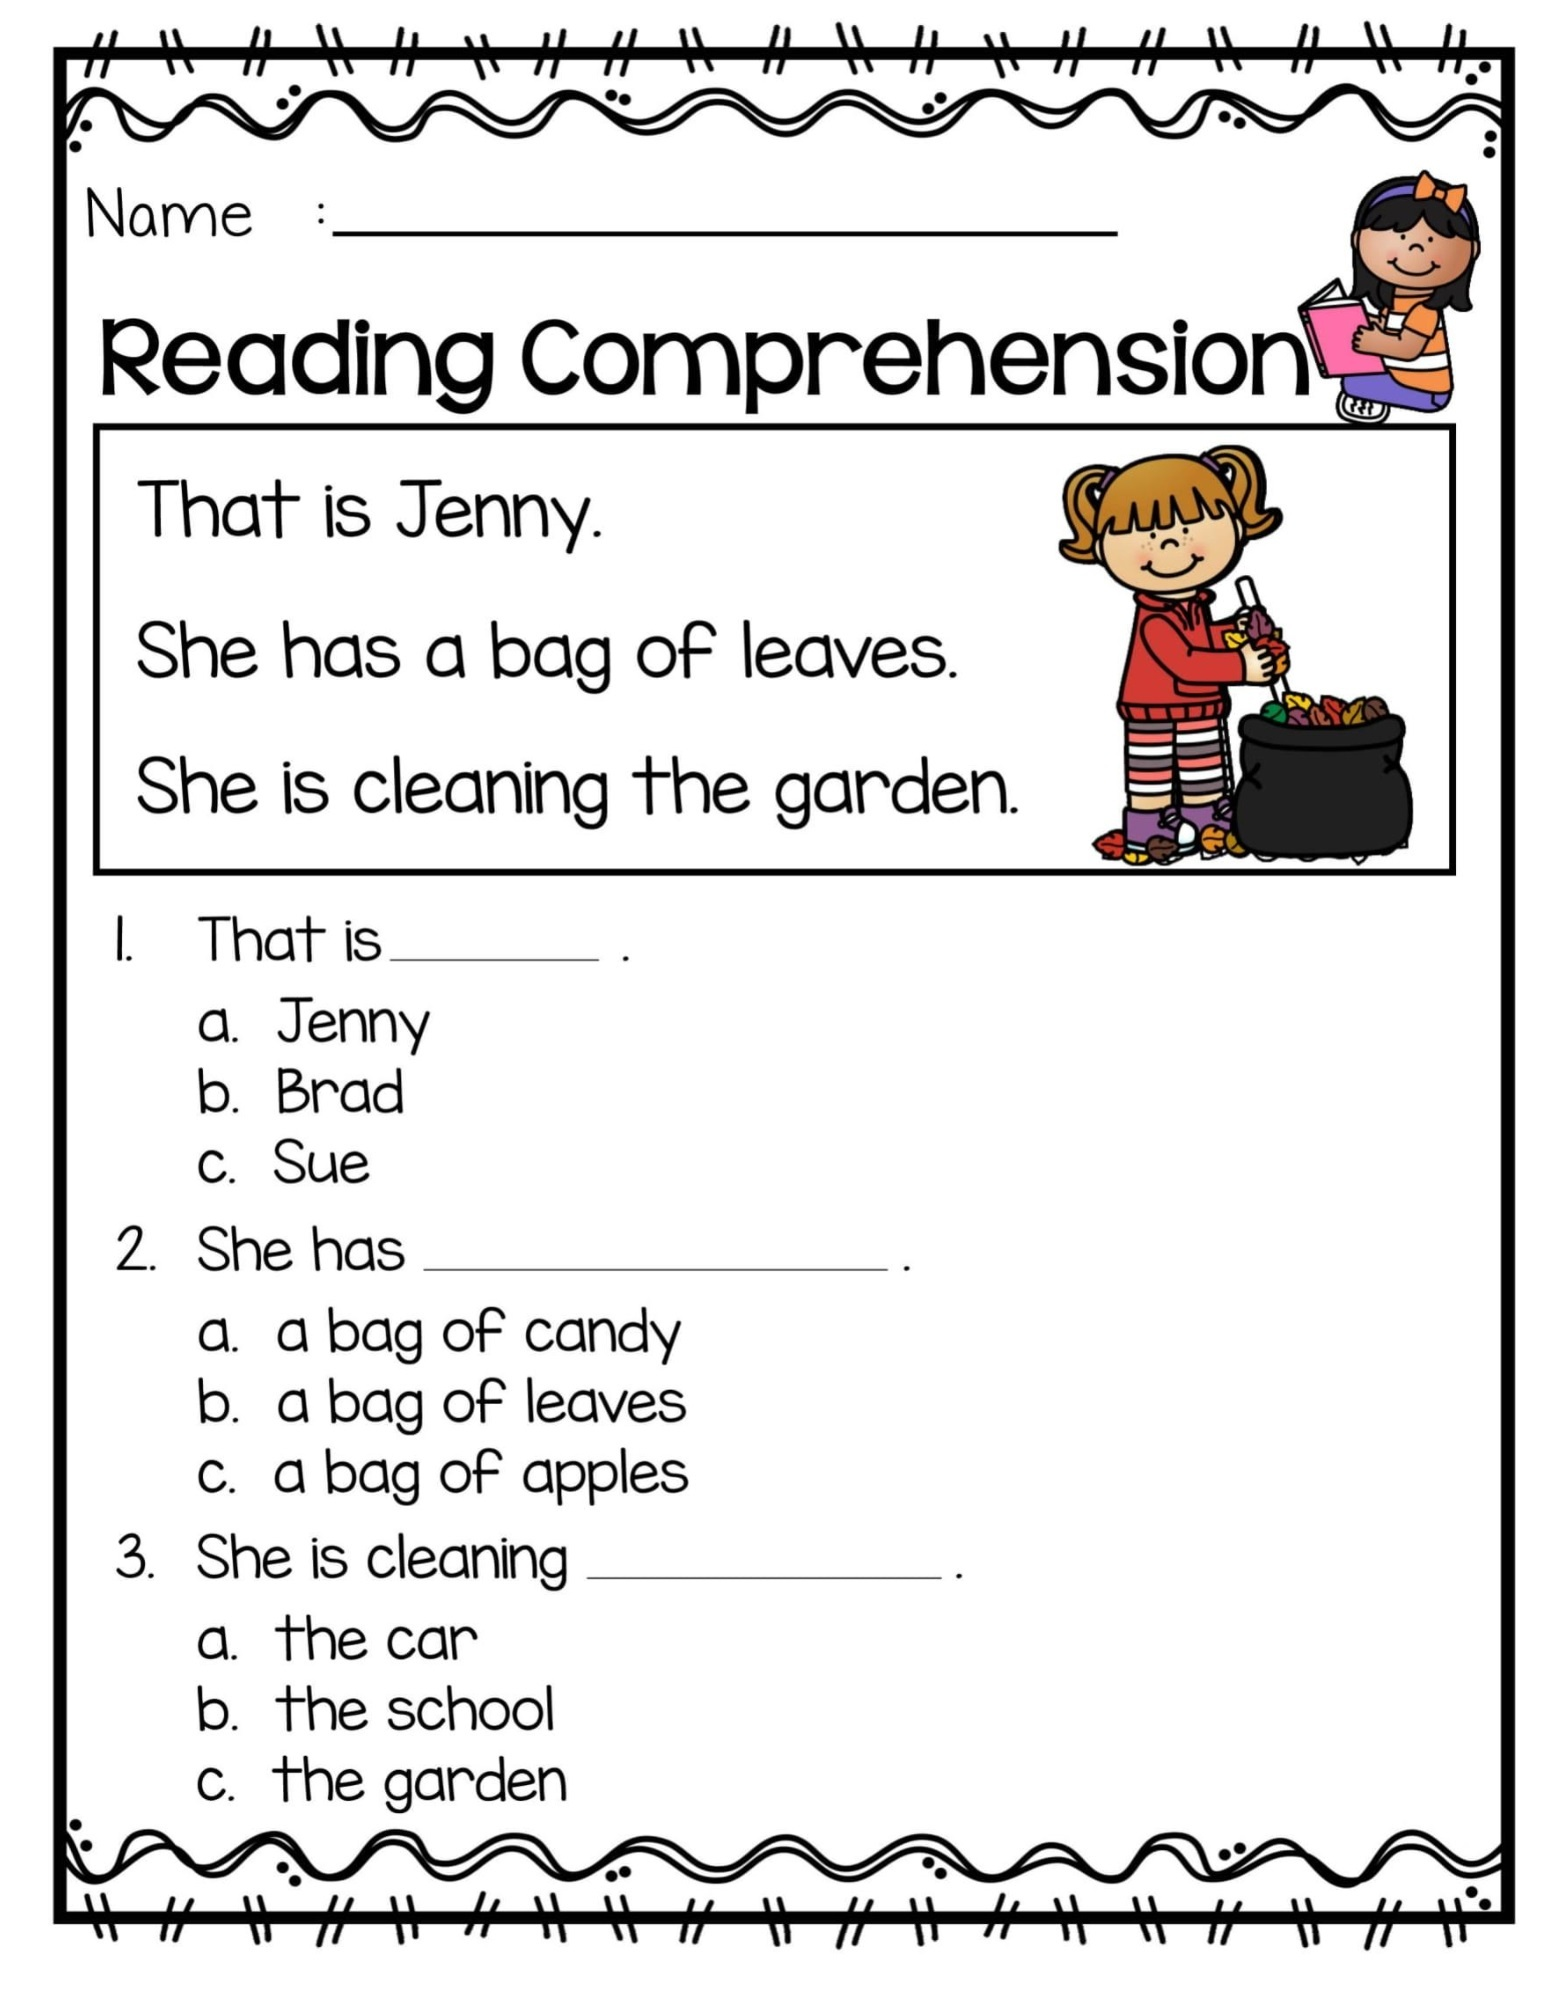 Amazing Reading Comprehension Worksheet For Grade 1